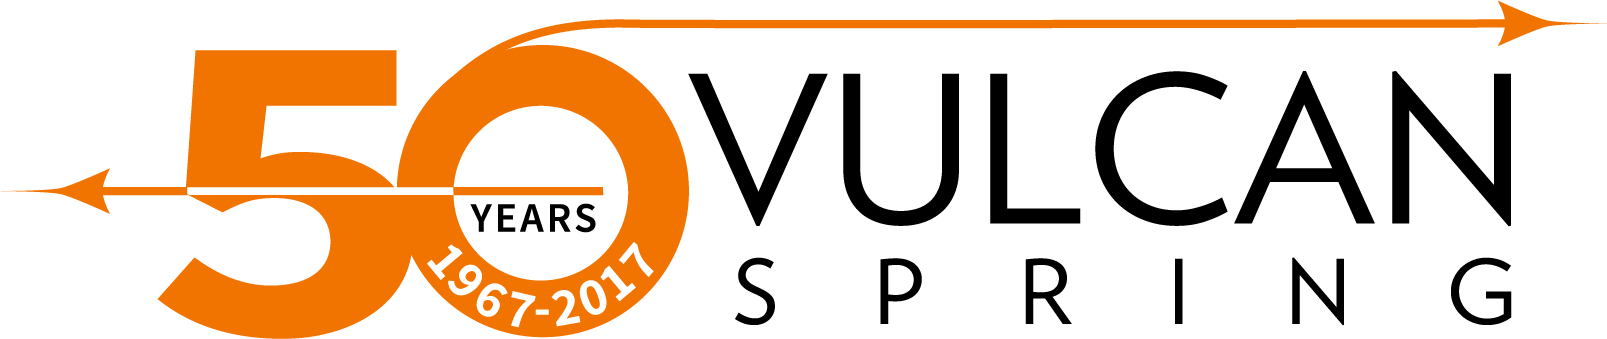 vulcan-logo_50th_all-orange-black_window.png